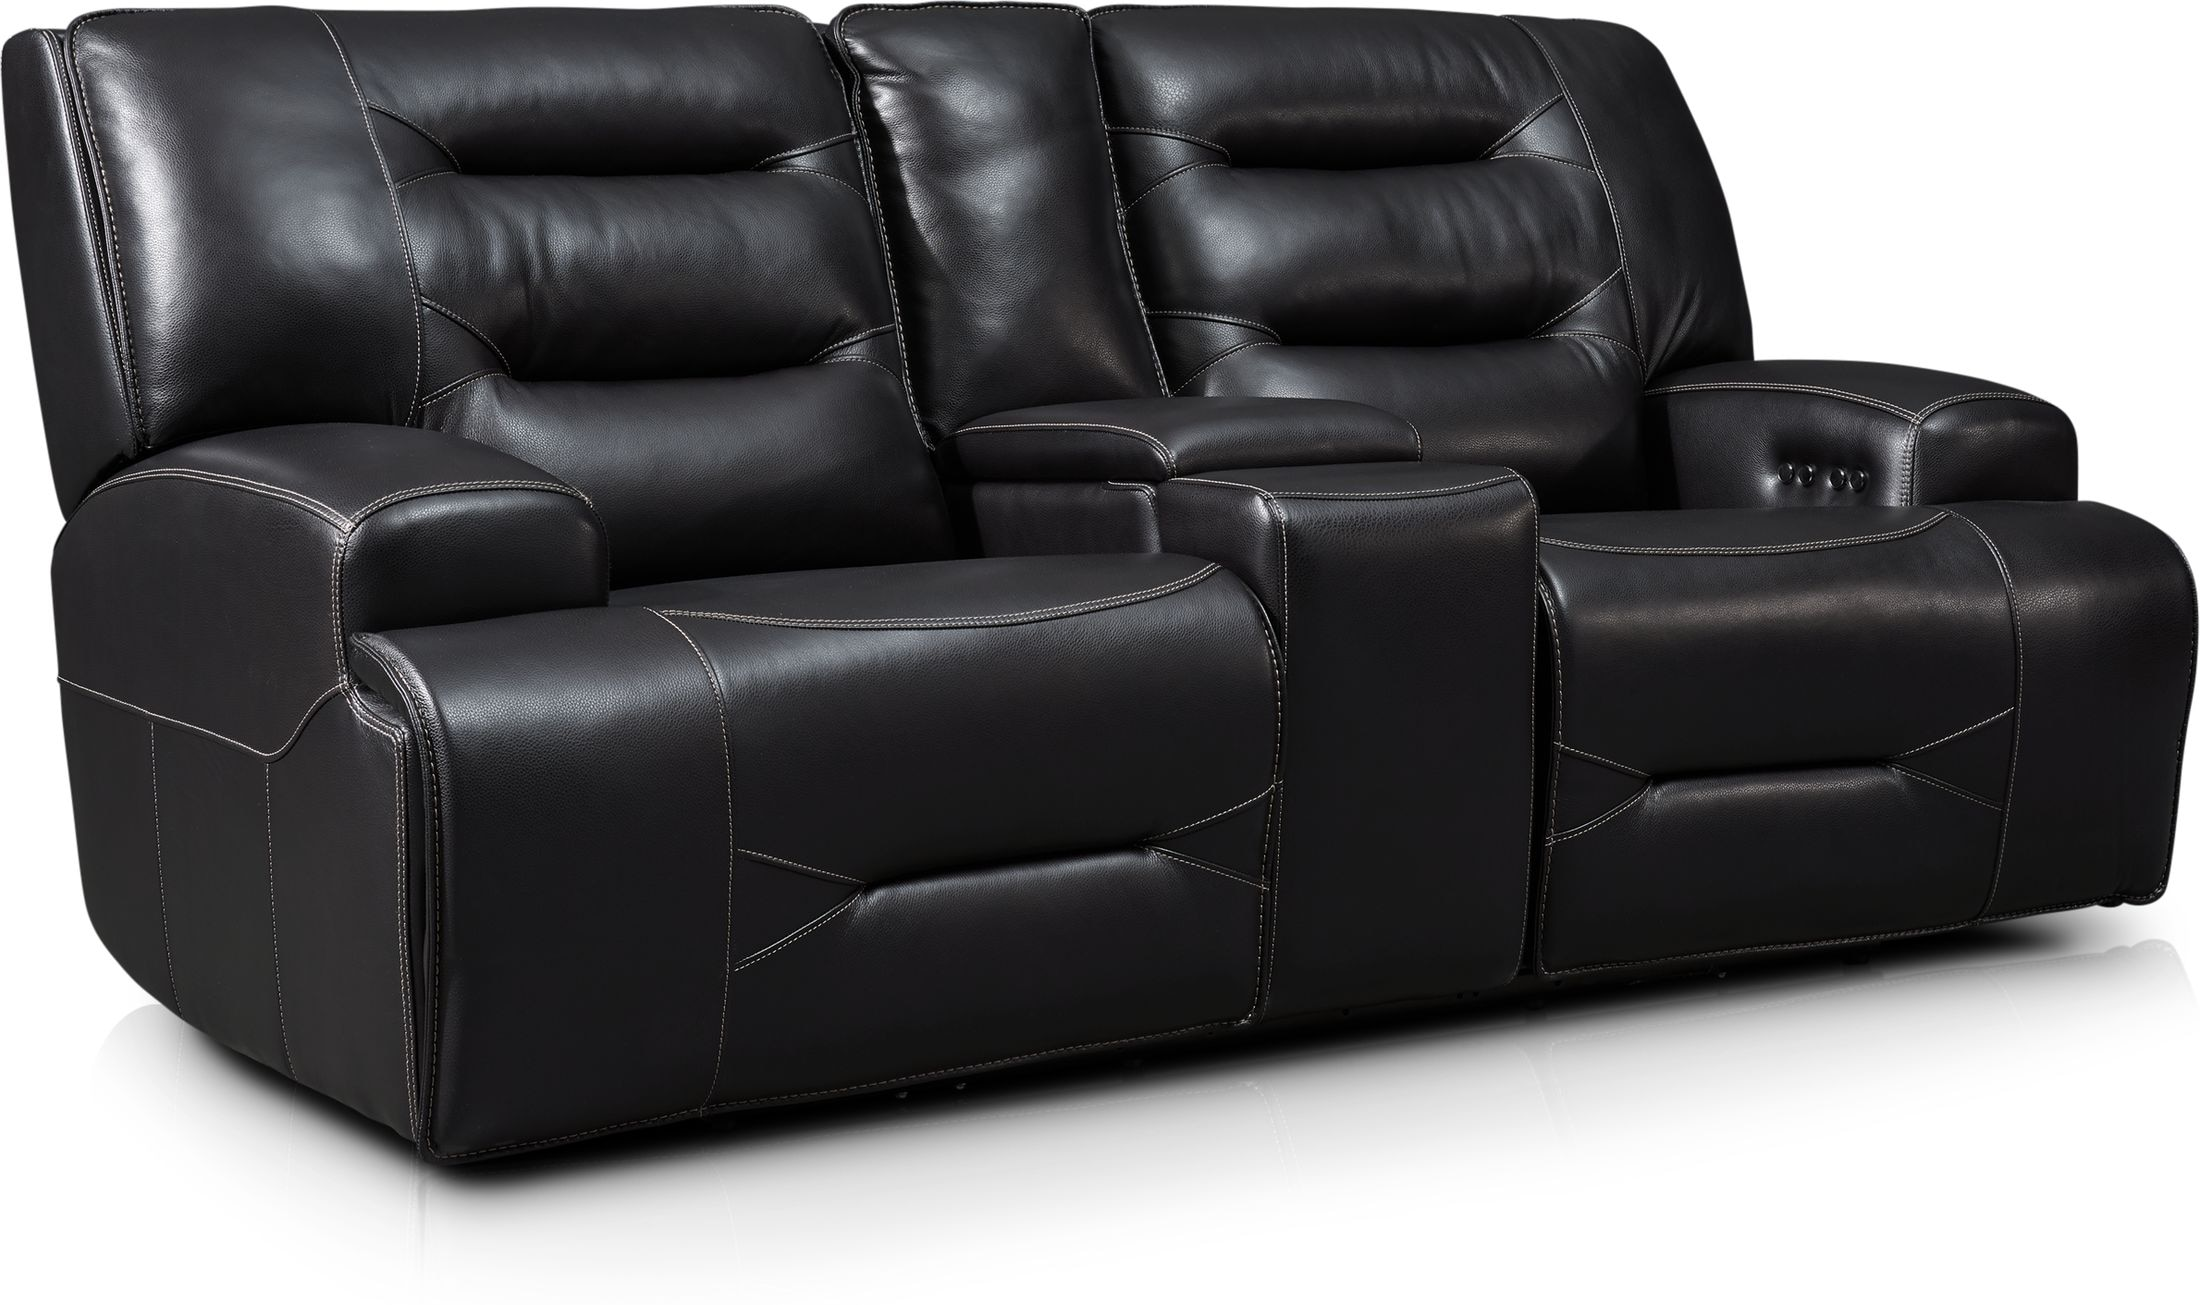 Living Room Furniture - Preston Dual-Power Reclining Loveseat - Black